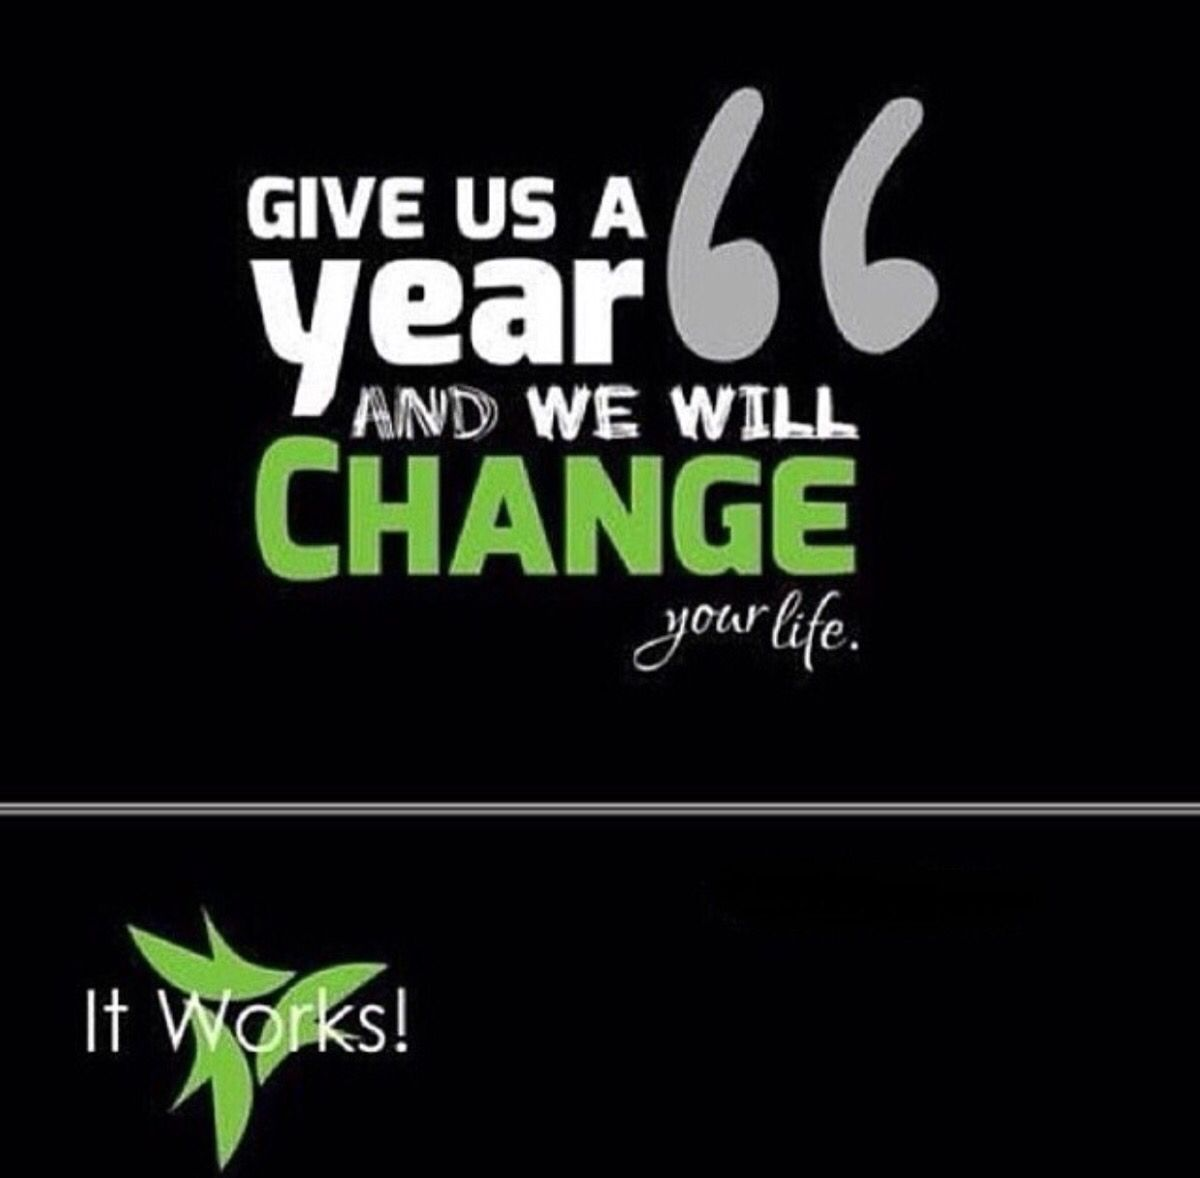 This WILL change your life forever!!Join my team and I will be there for you, EVERY step of the way!!! Contact me @ (315)694-6276 or www.johnesthewrapman.myitwork.com